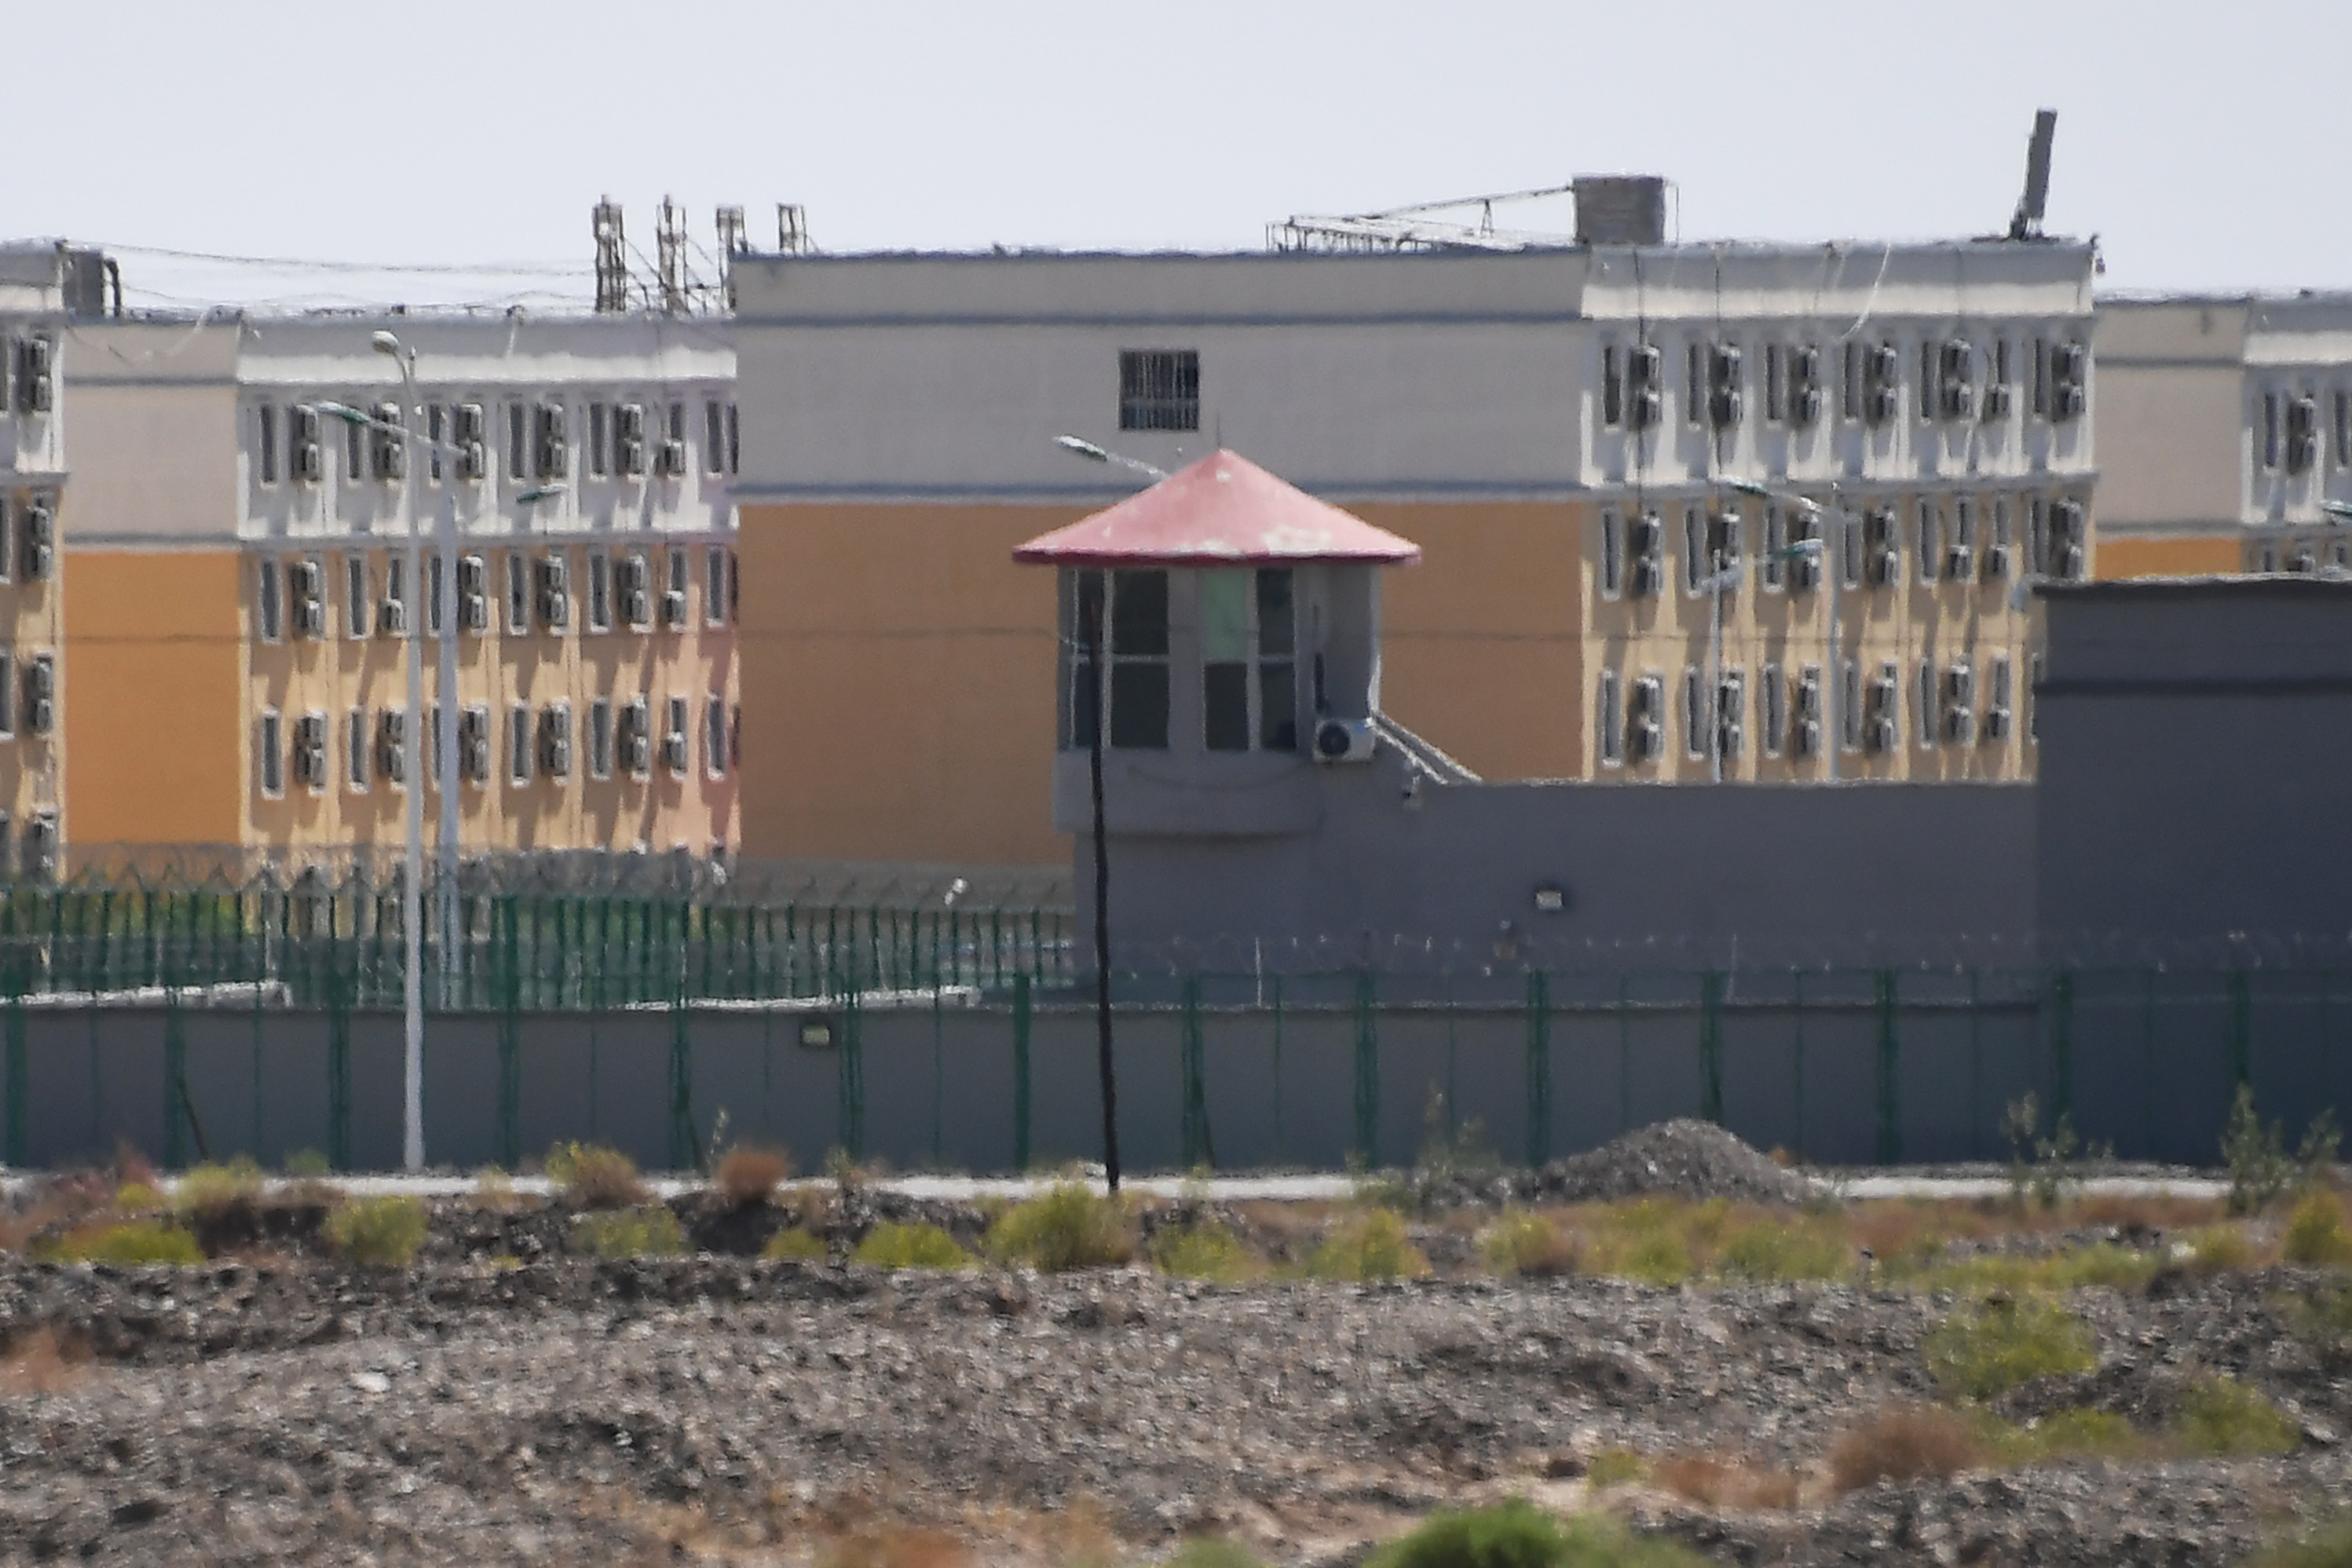 This photo taken on June 2, 2019 shows buildings at the Artux City Vocational Skills Education Training Service Center, believed to be a re-education camp where mostly Muslim ethnic minorities are detained, north of Kashgar in China's northwestern Xinjiang region. (Photo by GREG BAKER/AFP via Getty Images)